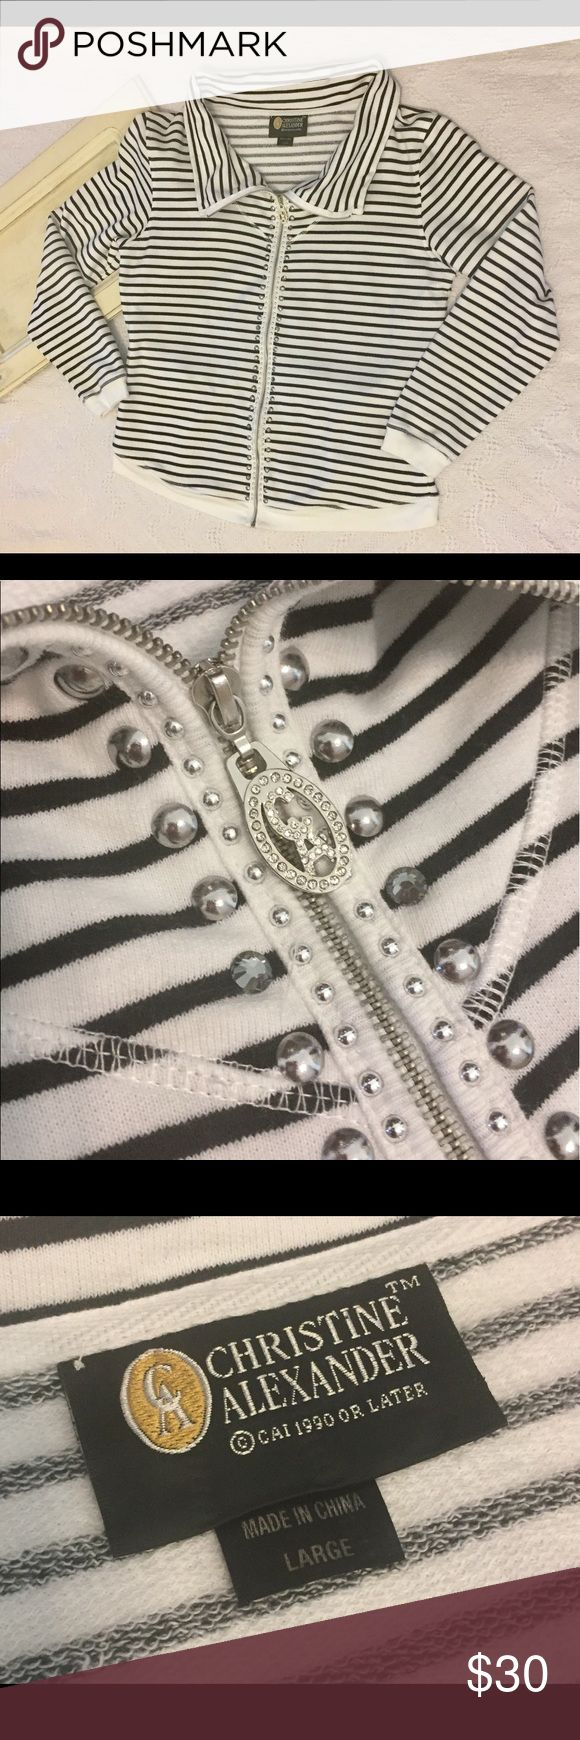 """Women's Christine Alexander B&W Striped Zip Up L Women's Christine Alexander White & Black Striped Zip Up size Large. Zipper is lined with silver studs and gray rhinestones, so pretty.  Zipper pull is a Rhinestone CA, so stunning.  Great zip up for everyday.  In gently used condition, no flaws. Please see pictures for details.  Armpit to Armpit - 22.5"""" Length - 26""""  Thank you for shopping with us, we appreciate your business.  *All items are measured laying flat, please be sure to check…"""